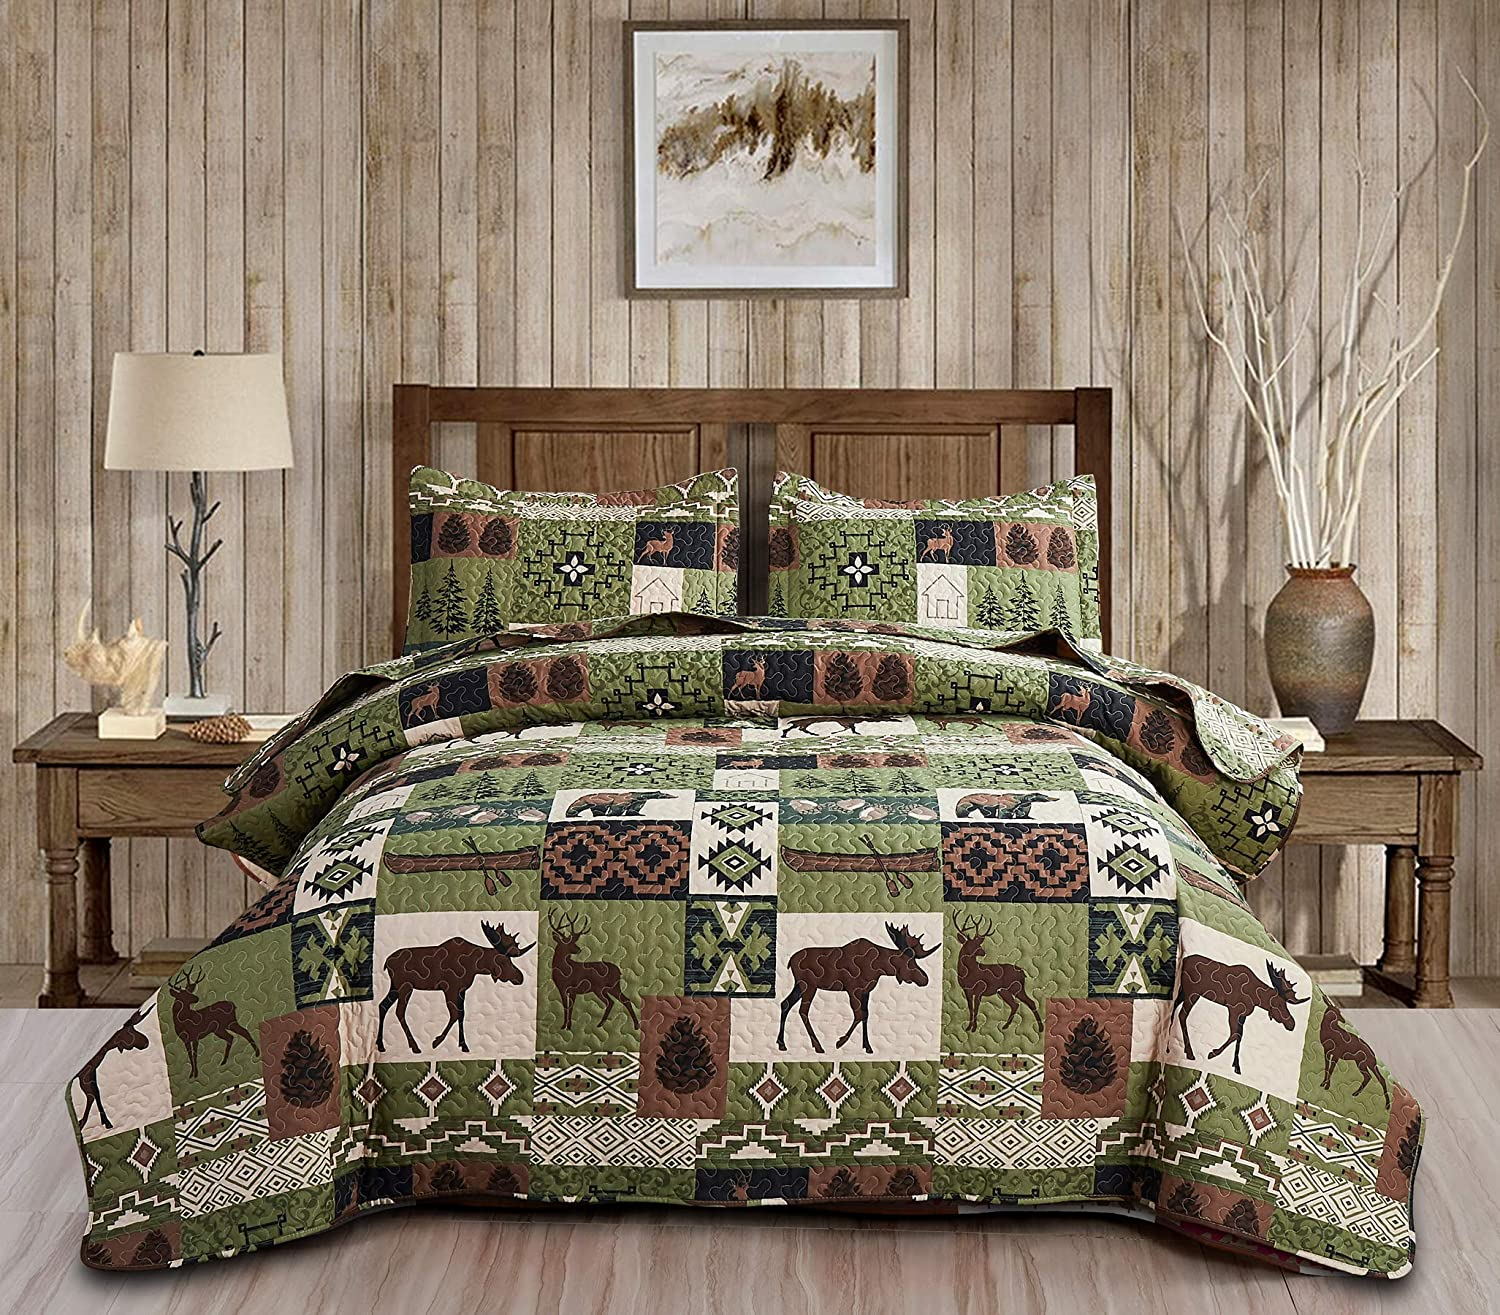 Moose San Francisco Mall Elk Quilt Set Rustic Lodge Twin All items in the store Bedspread Size Forest Bear